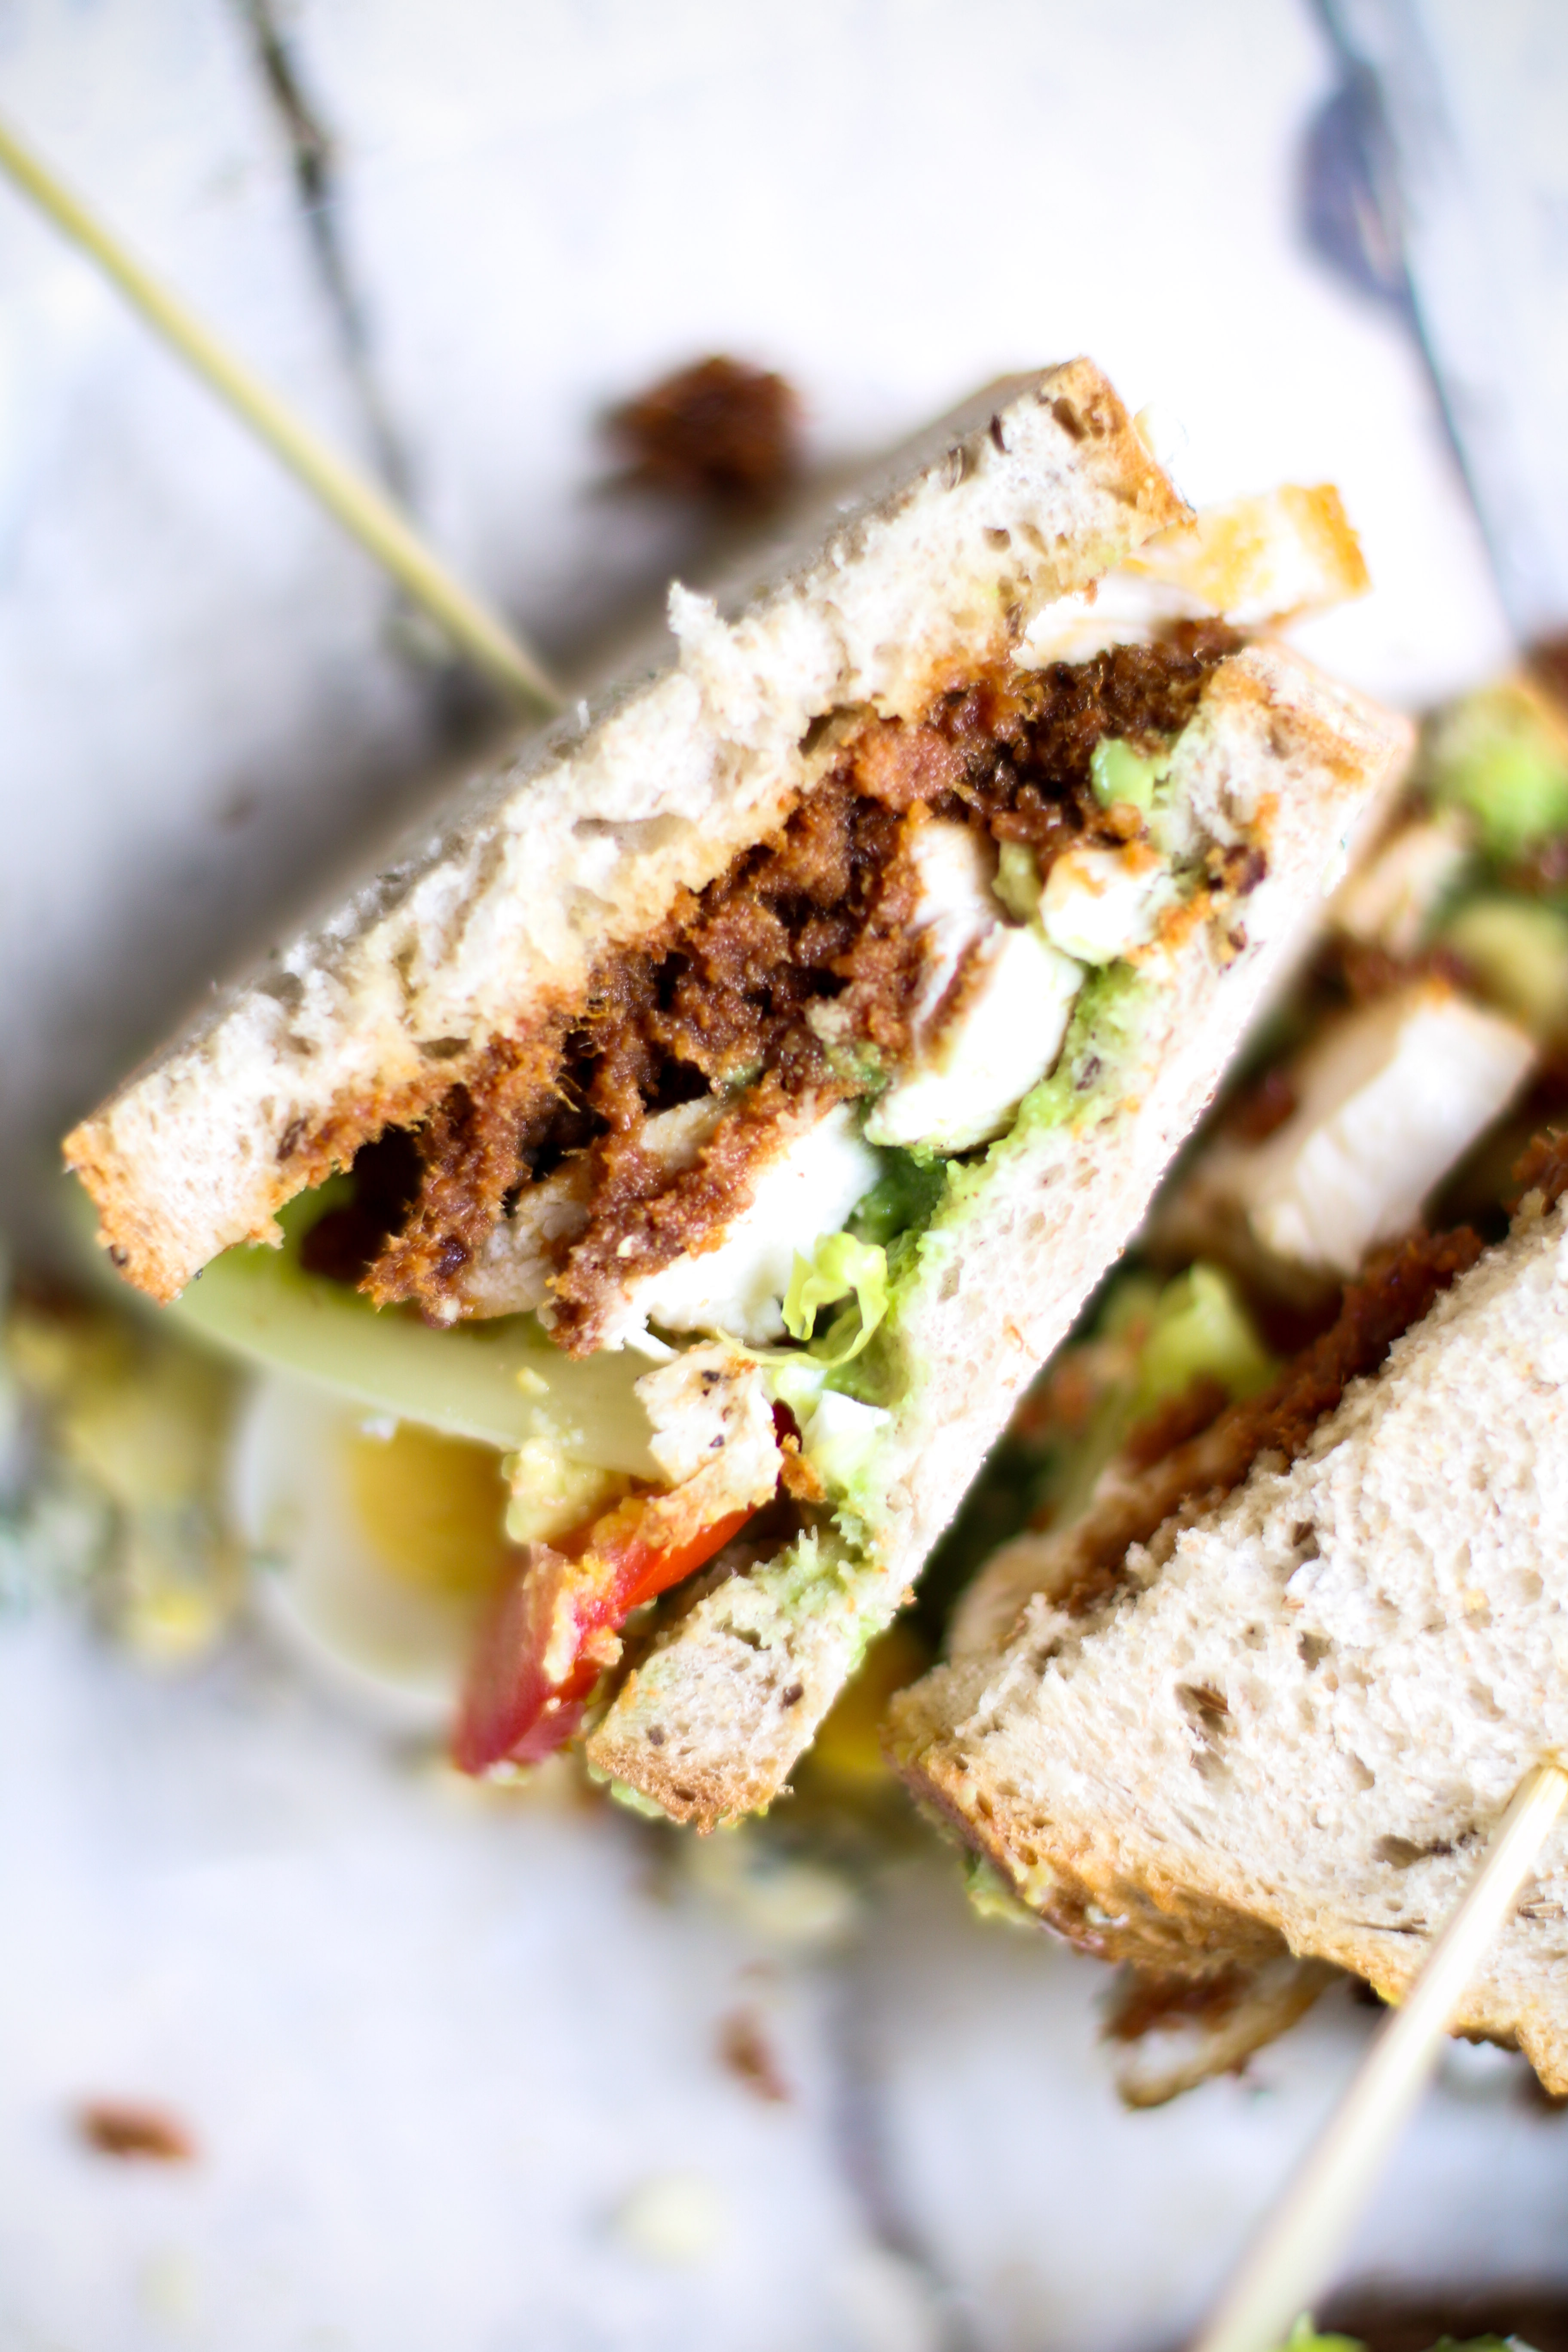 Bacon Jam Cobb Sandwiches | I Will Not Eat Oysters